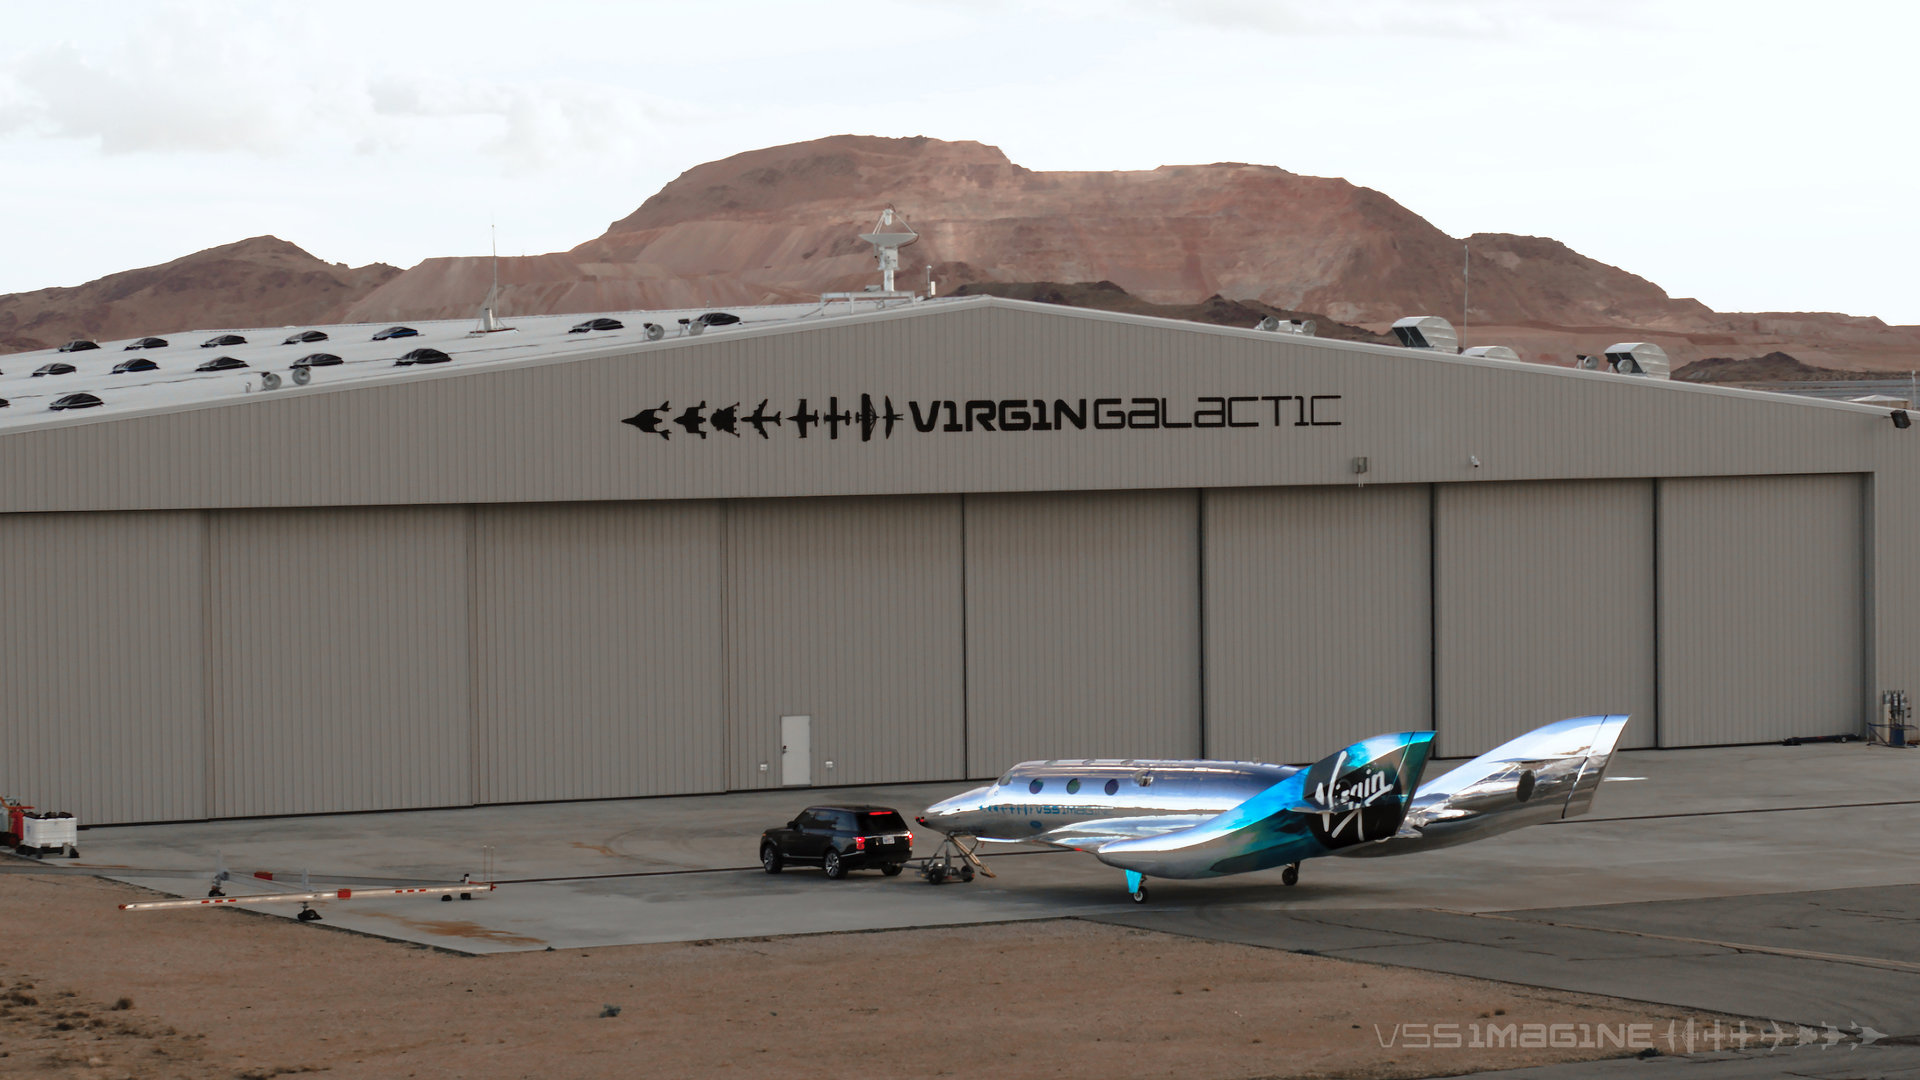 Introducing%20VSS%20Imagine%20the%20first%20SpaceShip%20III%20in%20the%20Virgin%20Galactic%20F...jpg